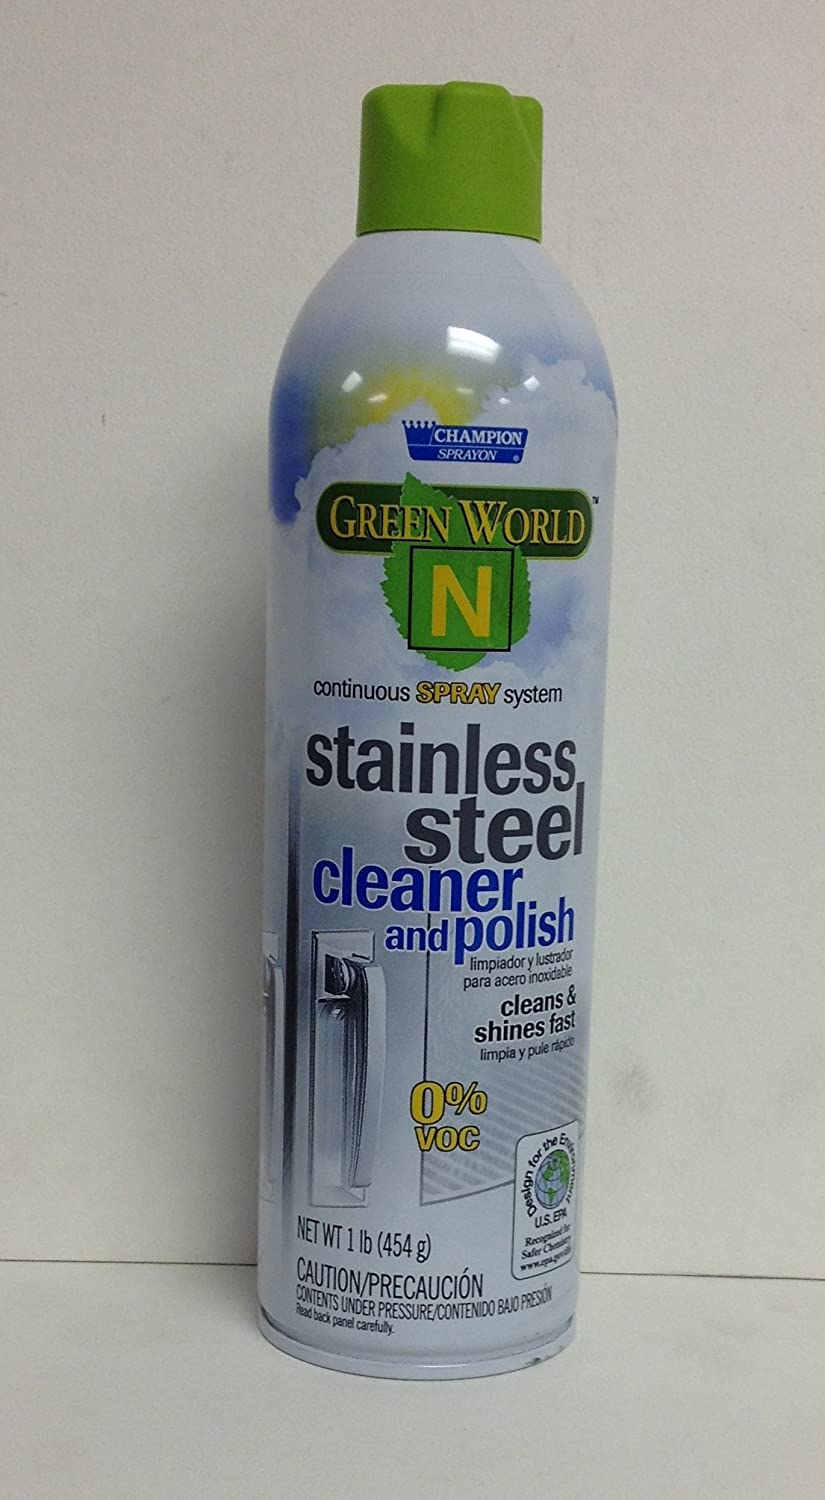 Champion Sprayon Green World N Stainless Steel Cleaner and Polish, 12 Cans/Case, Lot of 1